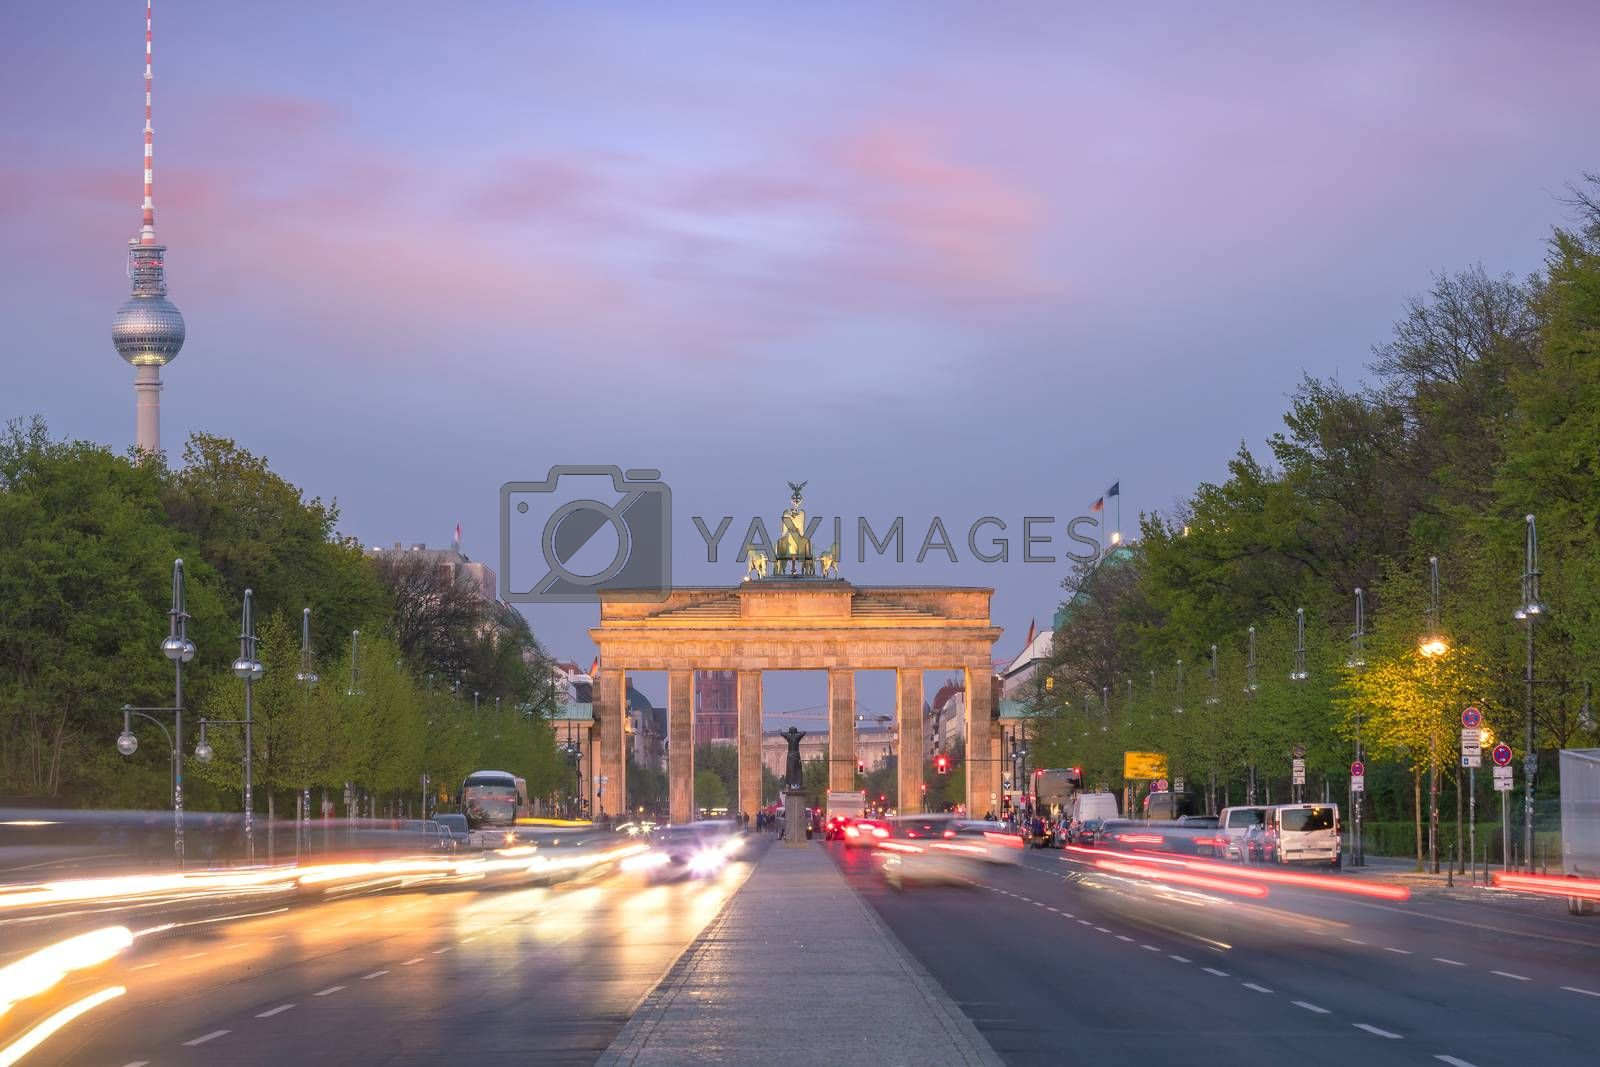 Royalty free image of The Brandenburg Gate in Berlin at sunset by f11photo